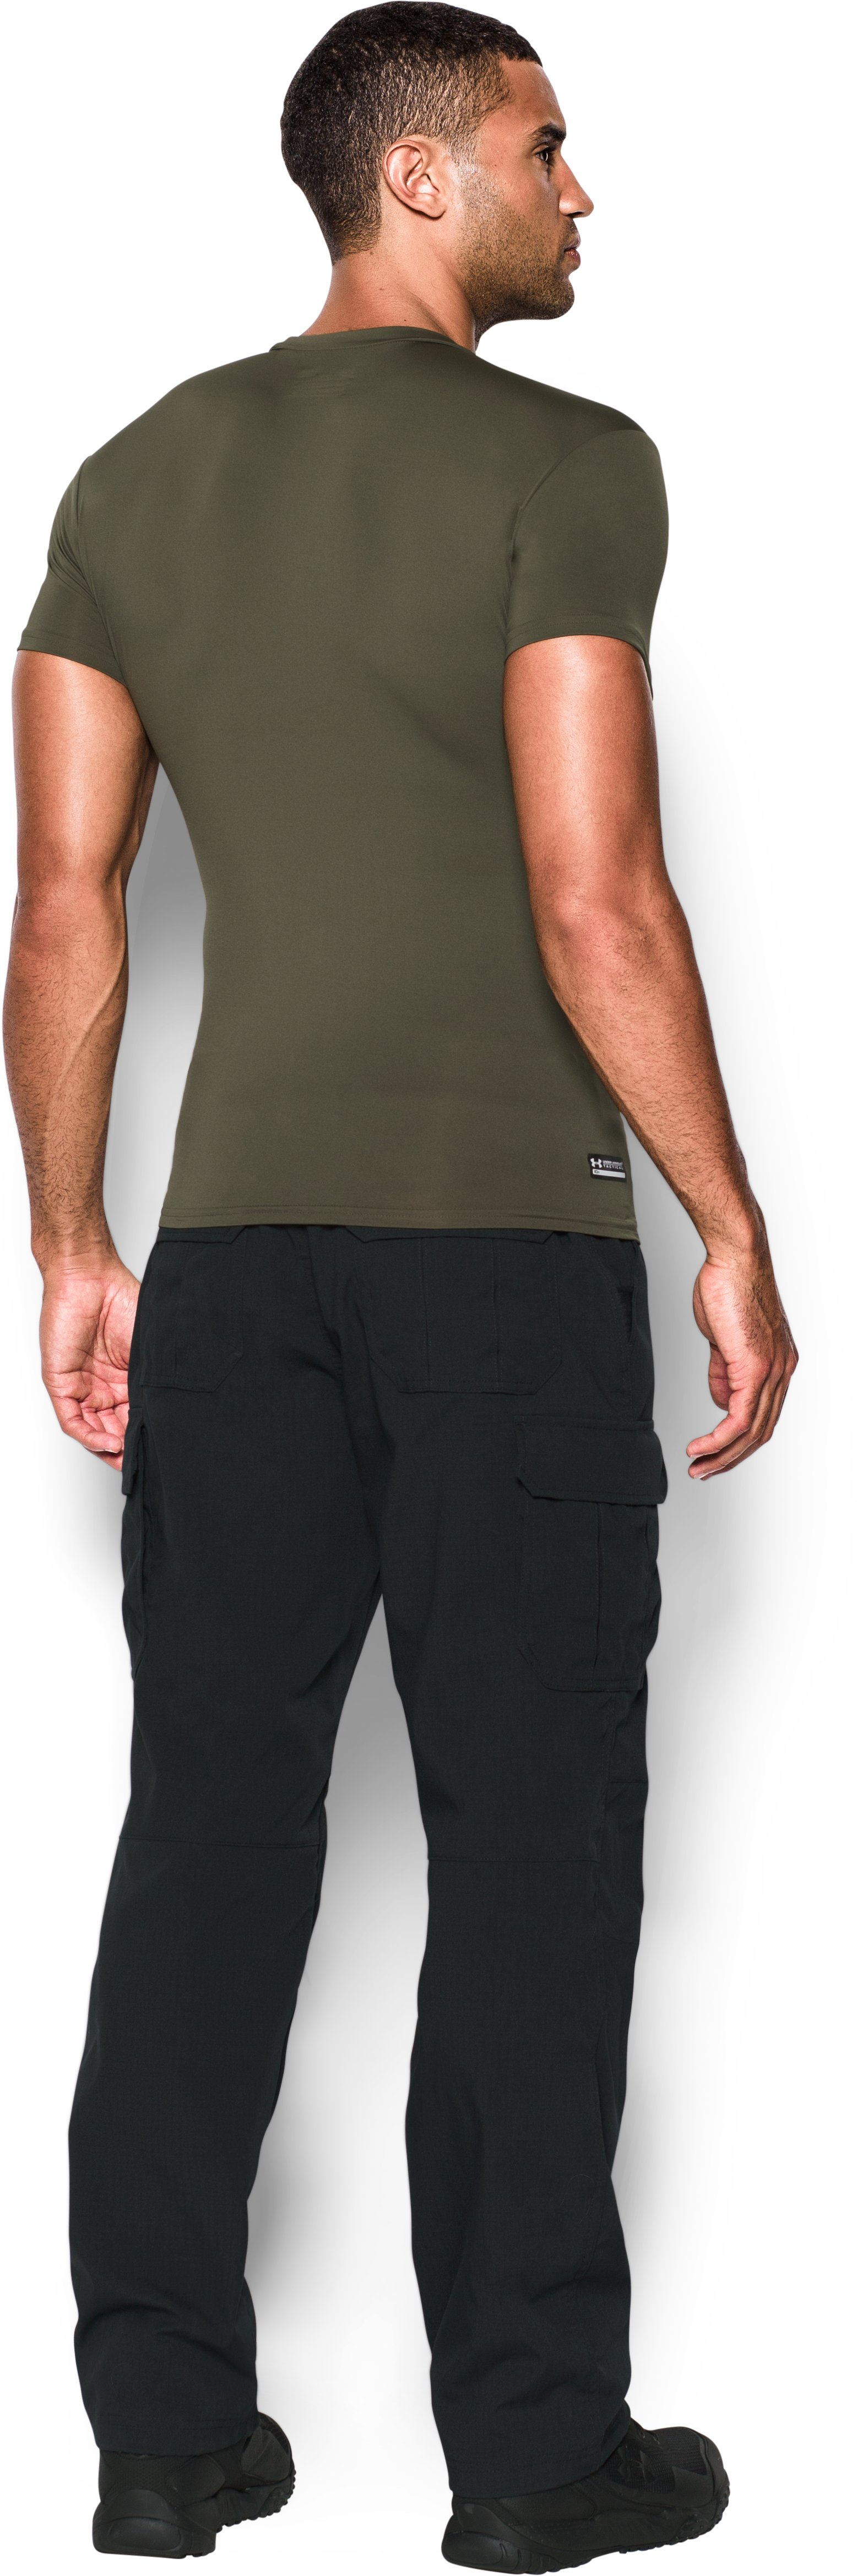 Men's Tactical HeatGear® Compression Short Sleeve T-Shirt, Marine OD Green, Back